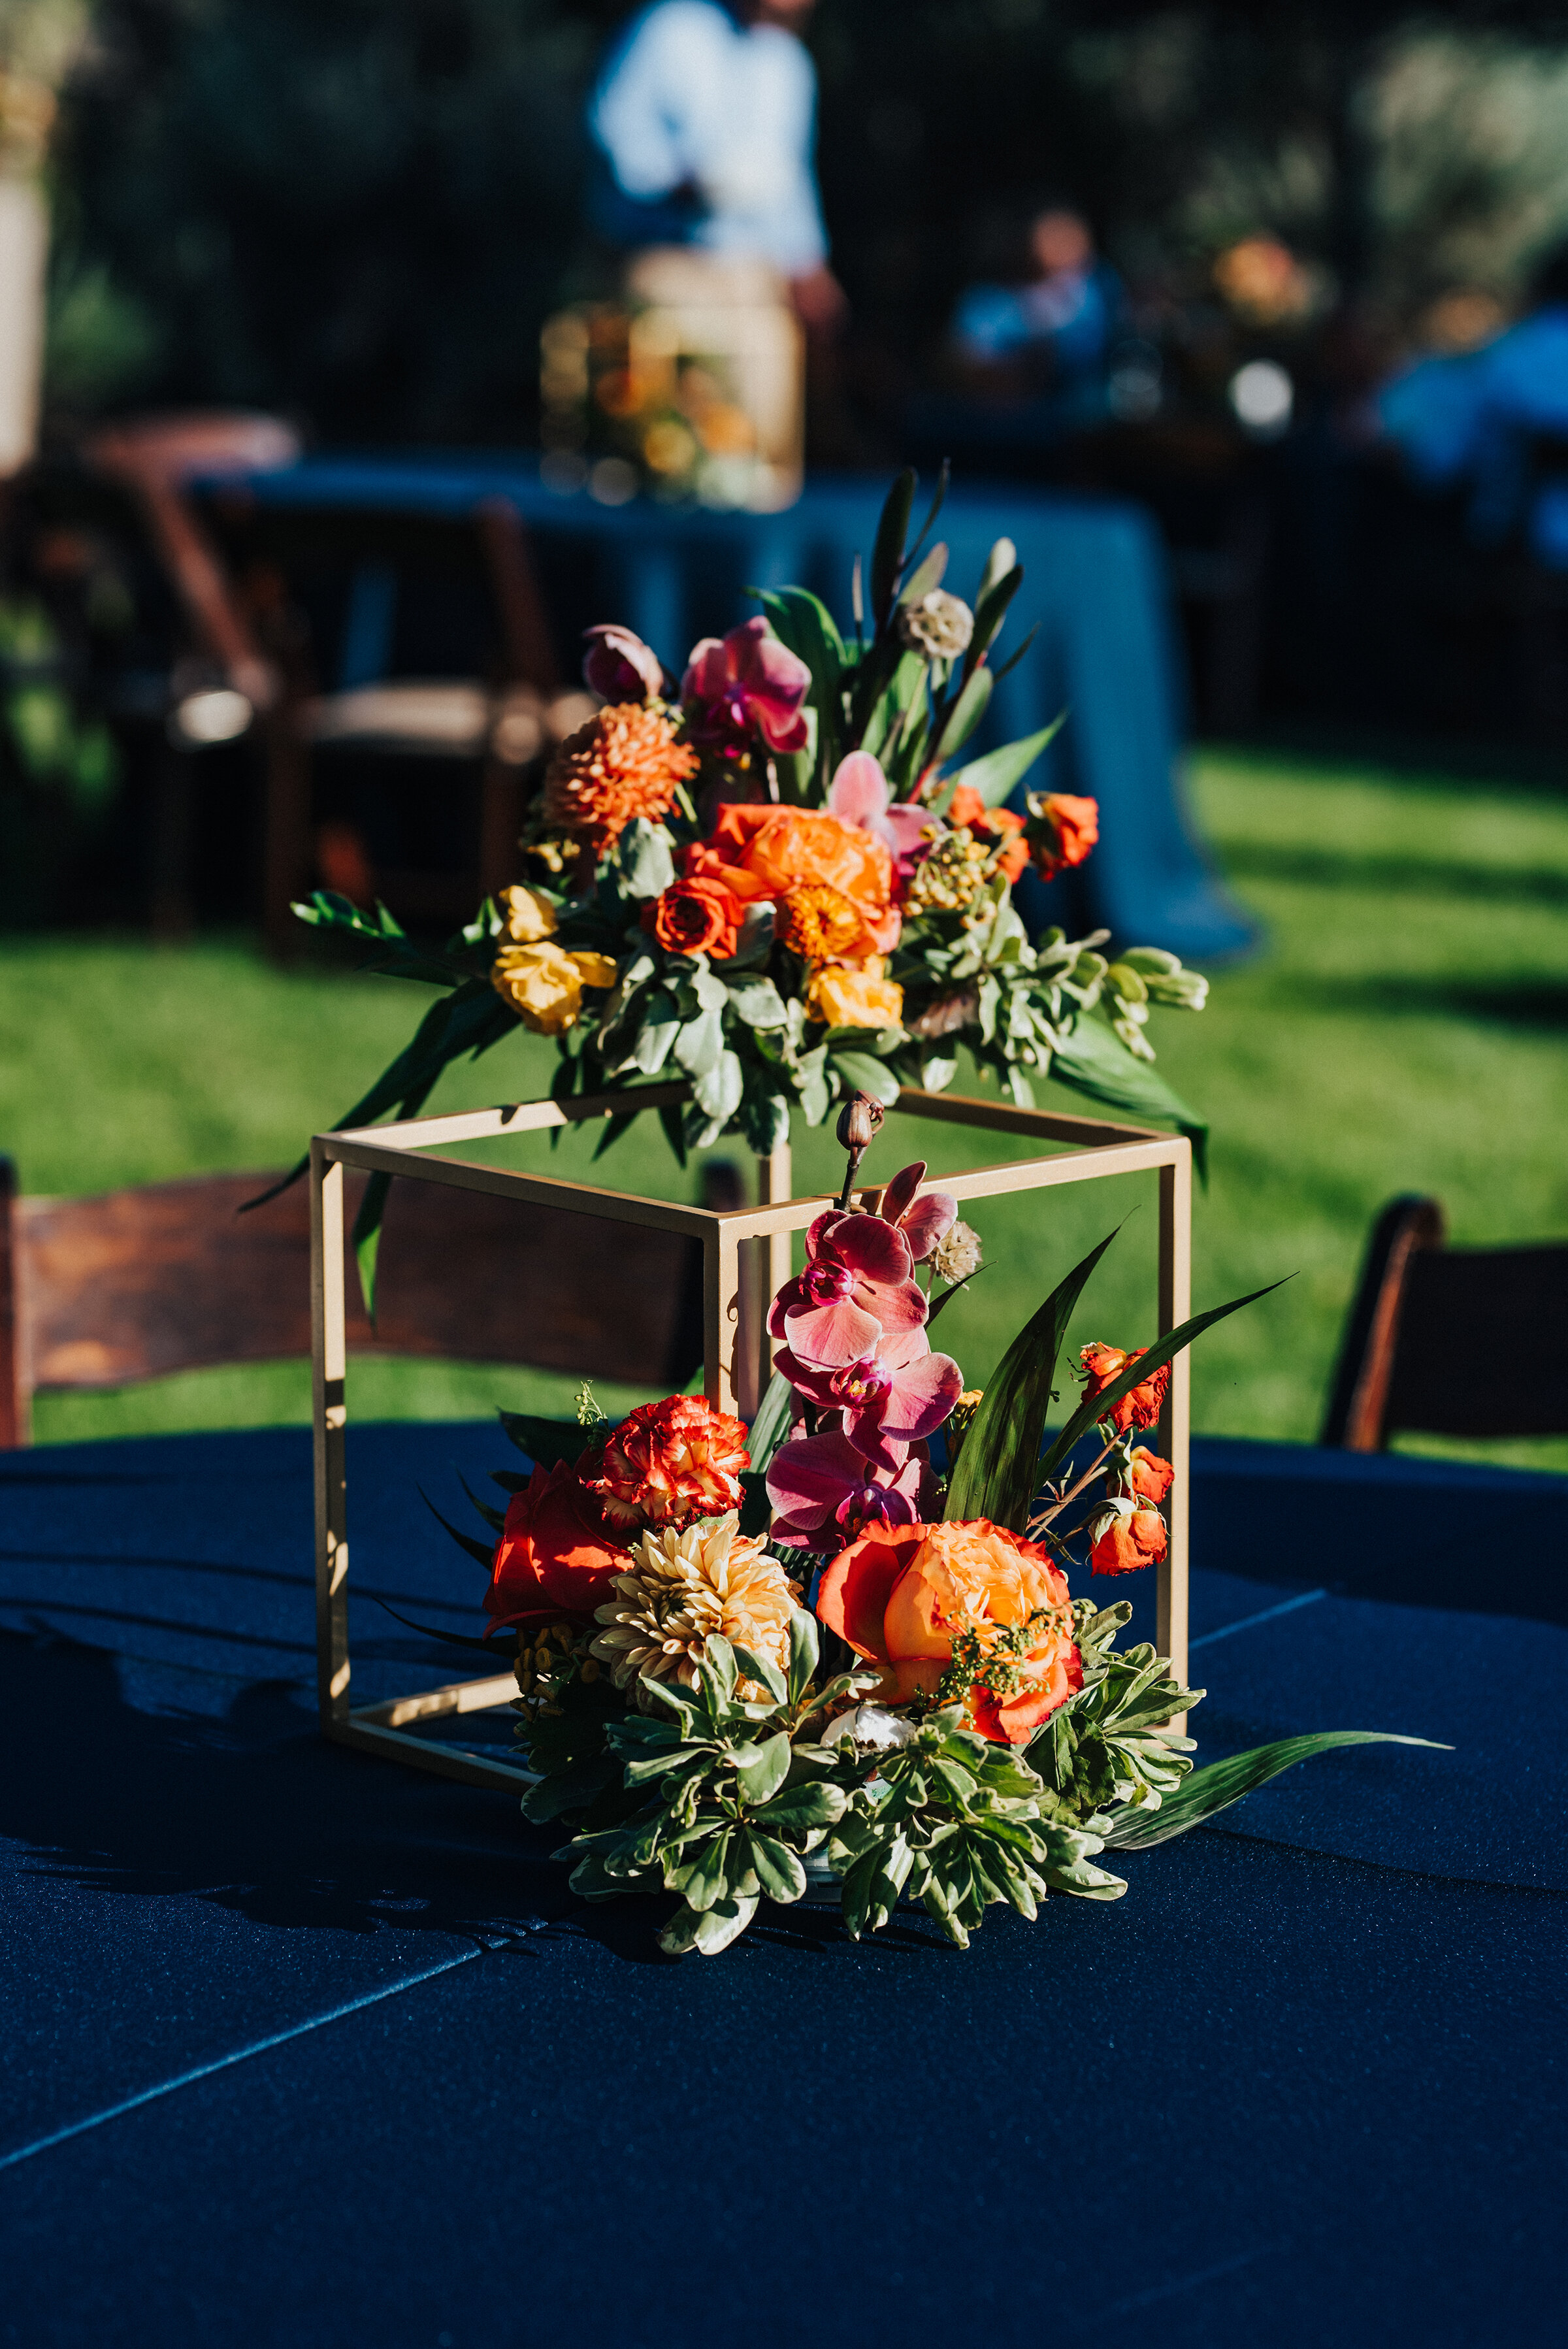 Beautiful handcrafted bouquets displayed at each table for this backyard wedding in Park City. Kristi Alyse Photography Logan Utah photographer Park City wedding photographer Drive-Thru wedding COVID wedding neon signs socially distant wedding bride and groom #kristialysephotography #weddingphotographer #utahweddings #parkcity #utahbrides #drivethruwedding #covidwedding #LoganUtahphotographer #utahweddingphotographer